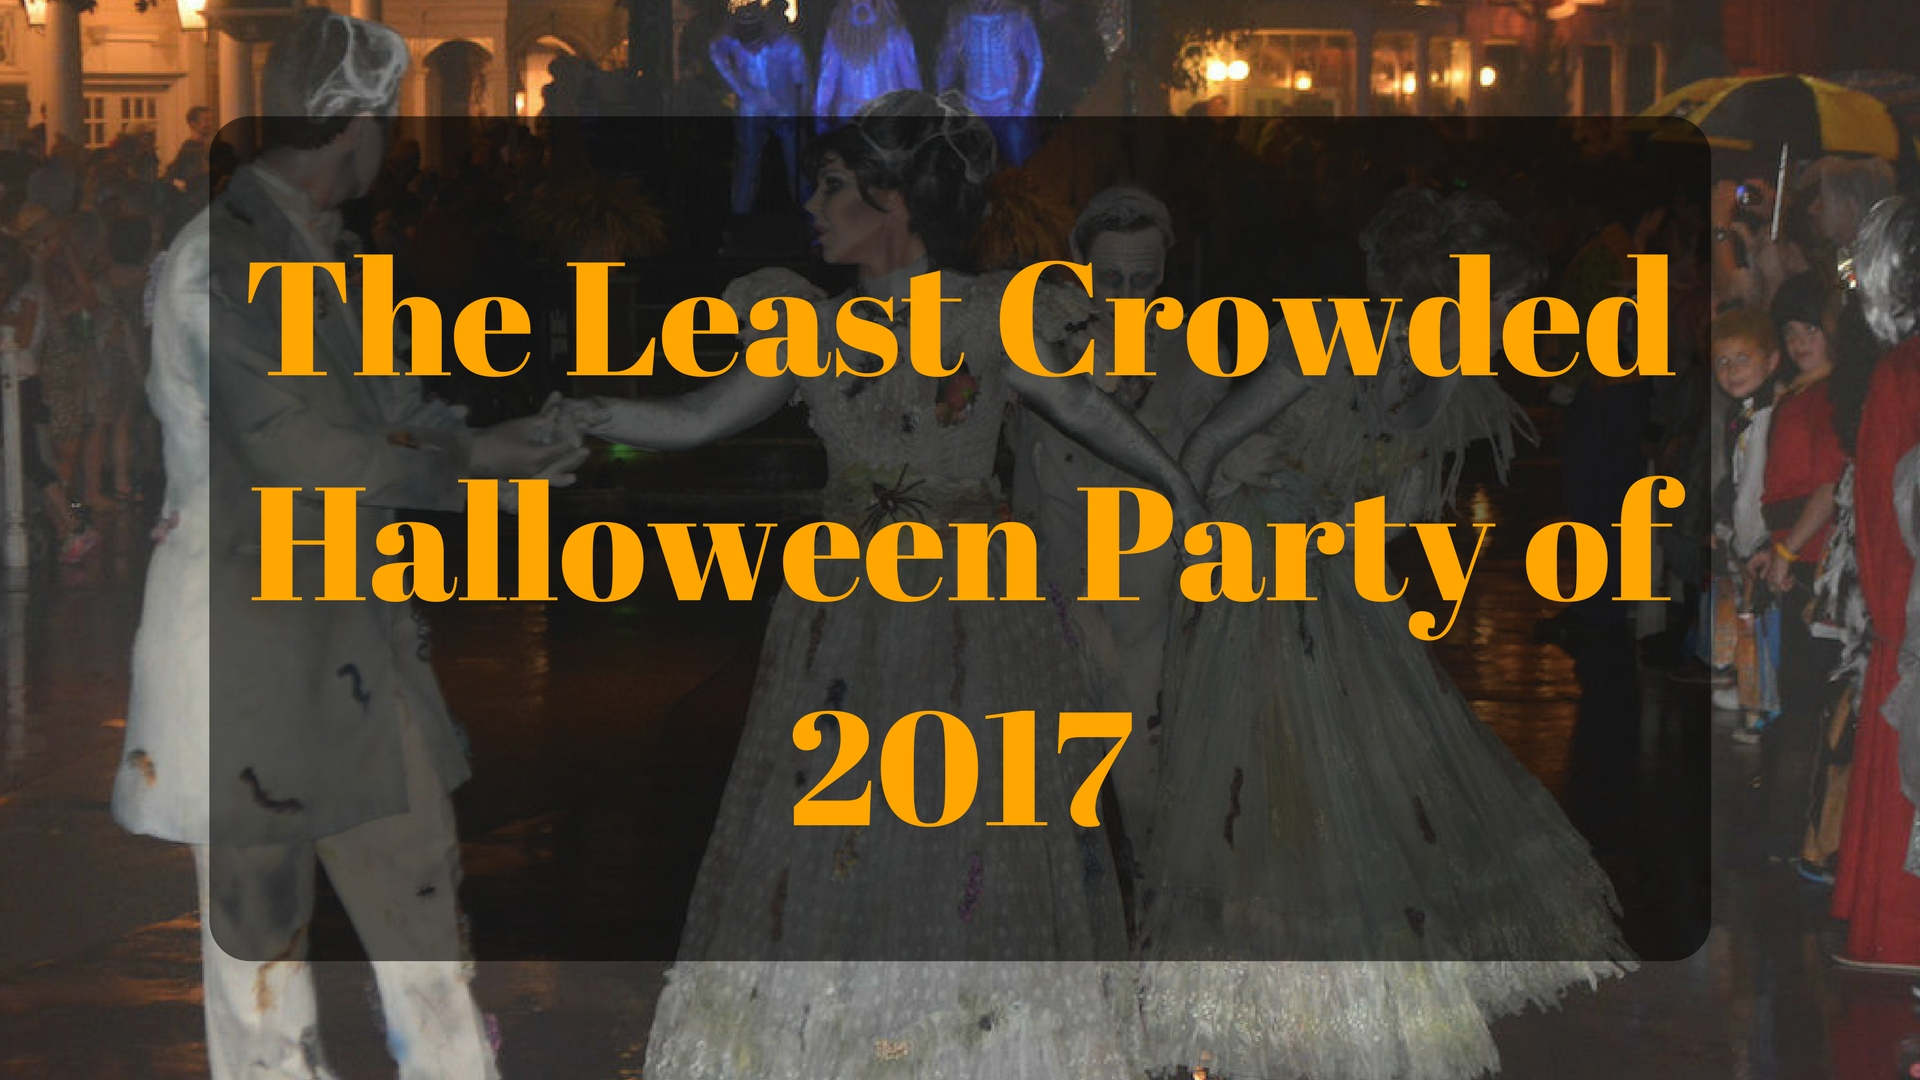 Welcome back to what has become a yearly tradition: predicting the least crowded Mickey's Not-So-Scary Halloween party. We'll look back at last year's ...